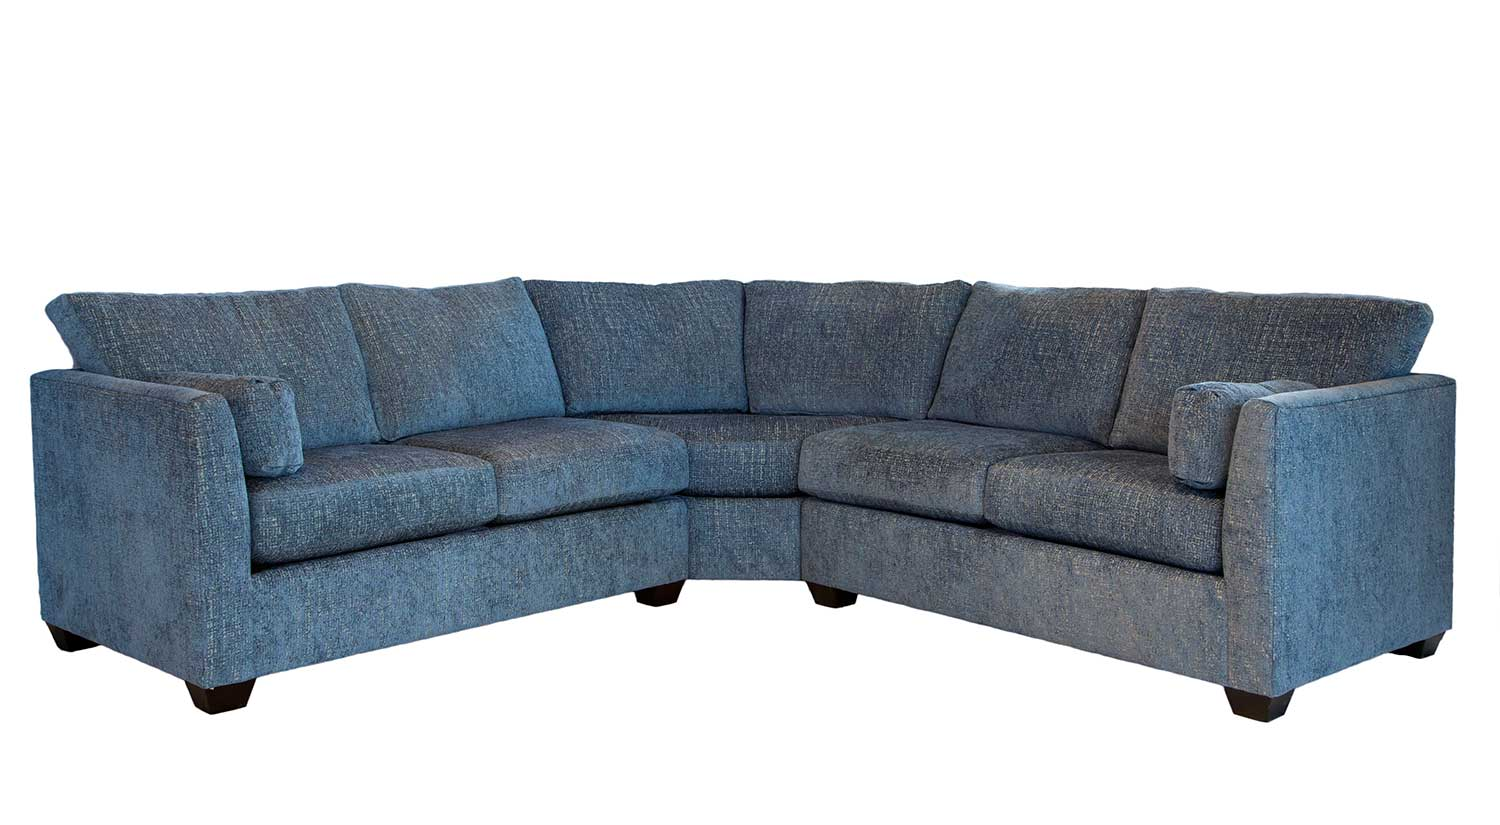 Admirable Circle Furniture Horizon Sectional Sofas Boston Circle Pabps2019 Chair Design Images Pabps2019Com